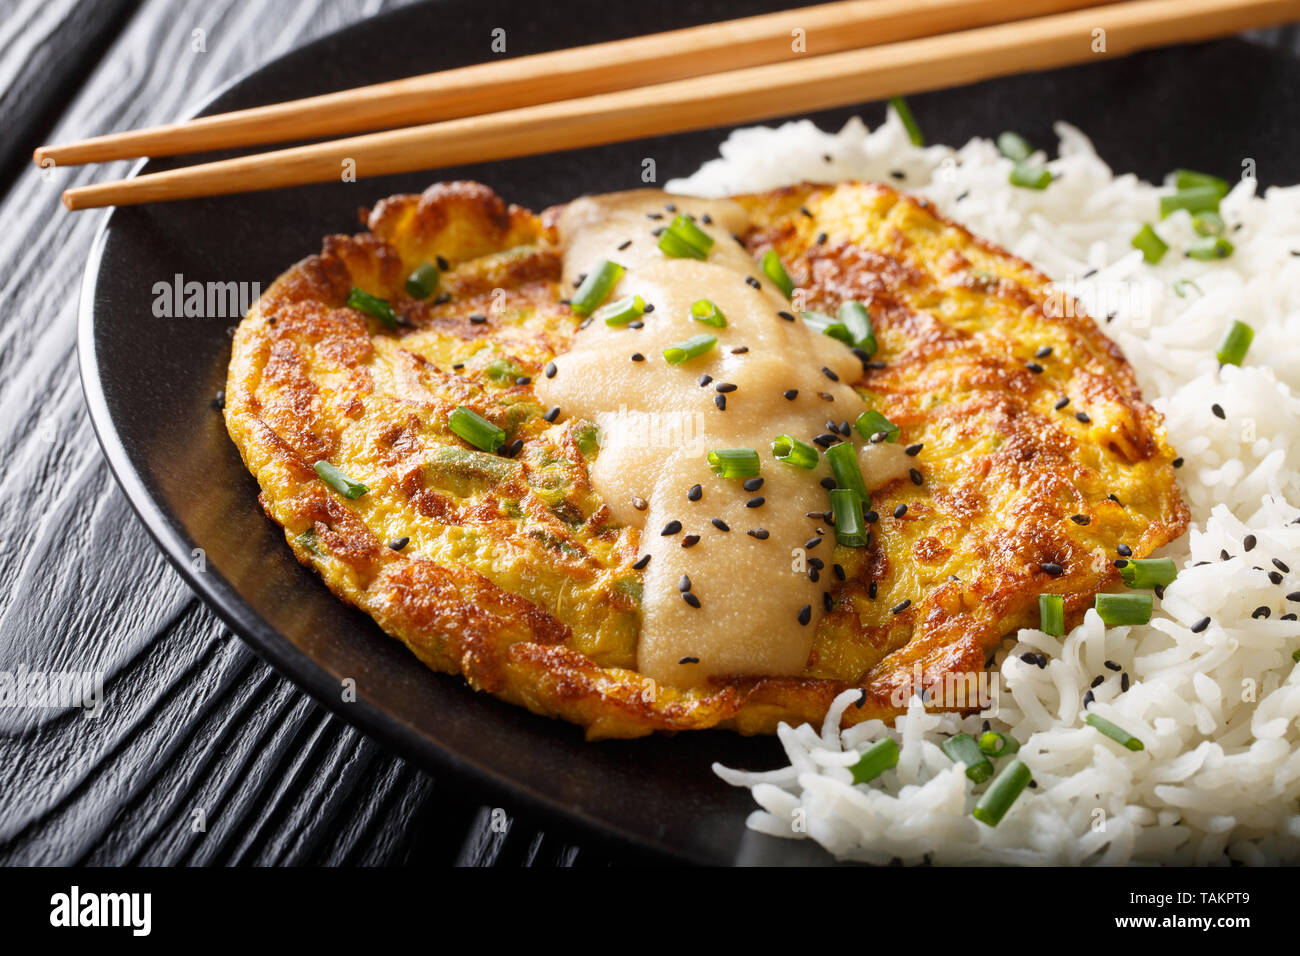 Egg foo yong fried egg patty containing vegetables  and meat with rice garnish close-up on a plate on the table. Horizontal - Stock Image